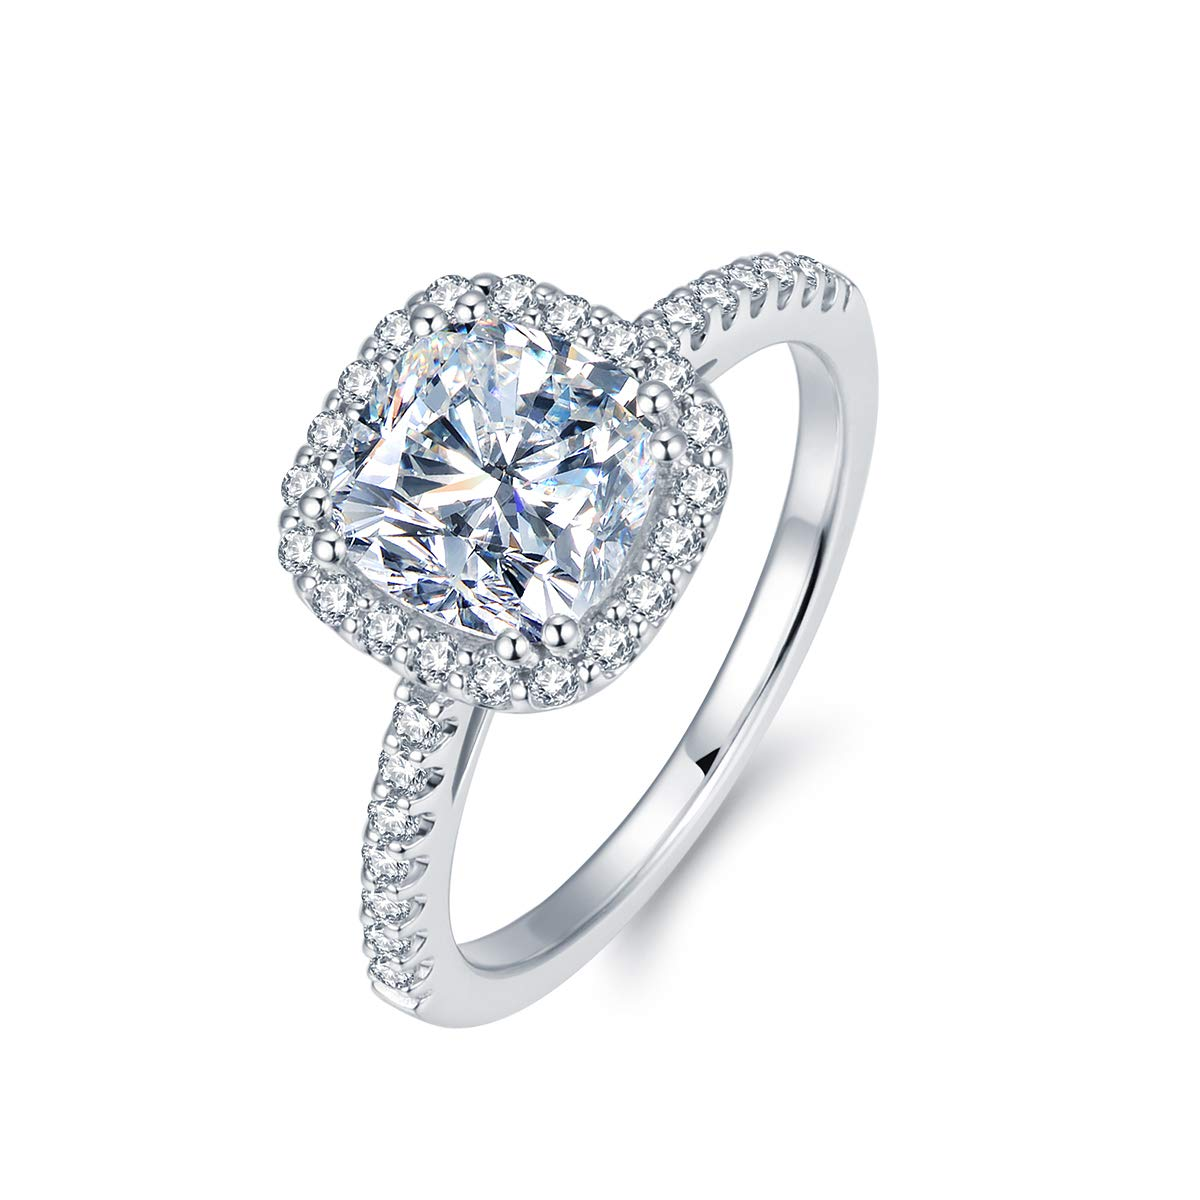 2.5ct Cushion Cut Cut Petite Micropave Floating Halo Simulated Diamond Cubic zirconia CZ Engagement Rings for Women, 3.26ctw (7.5)